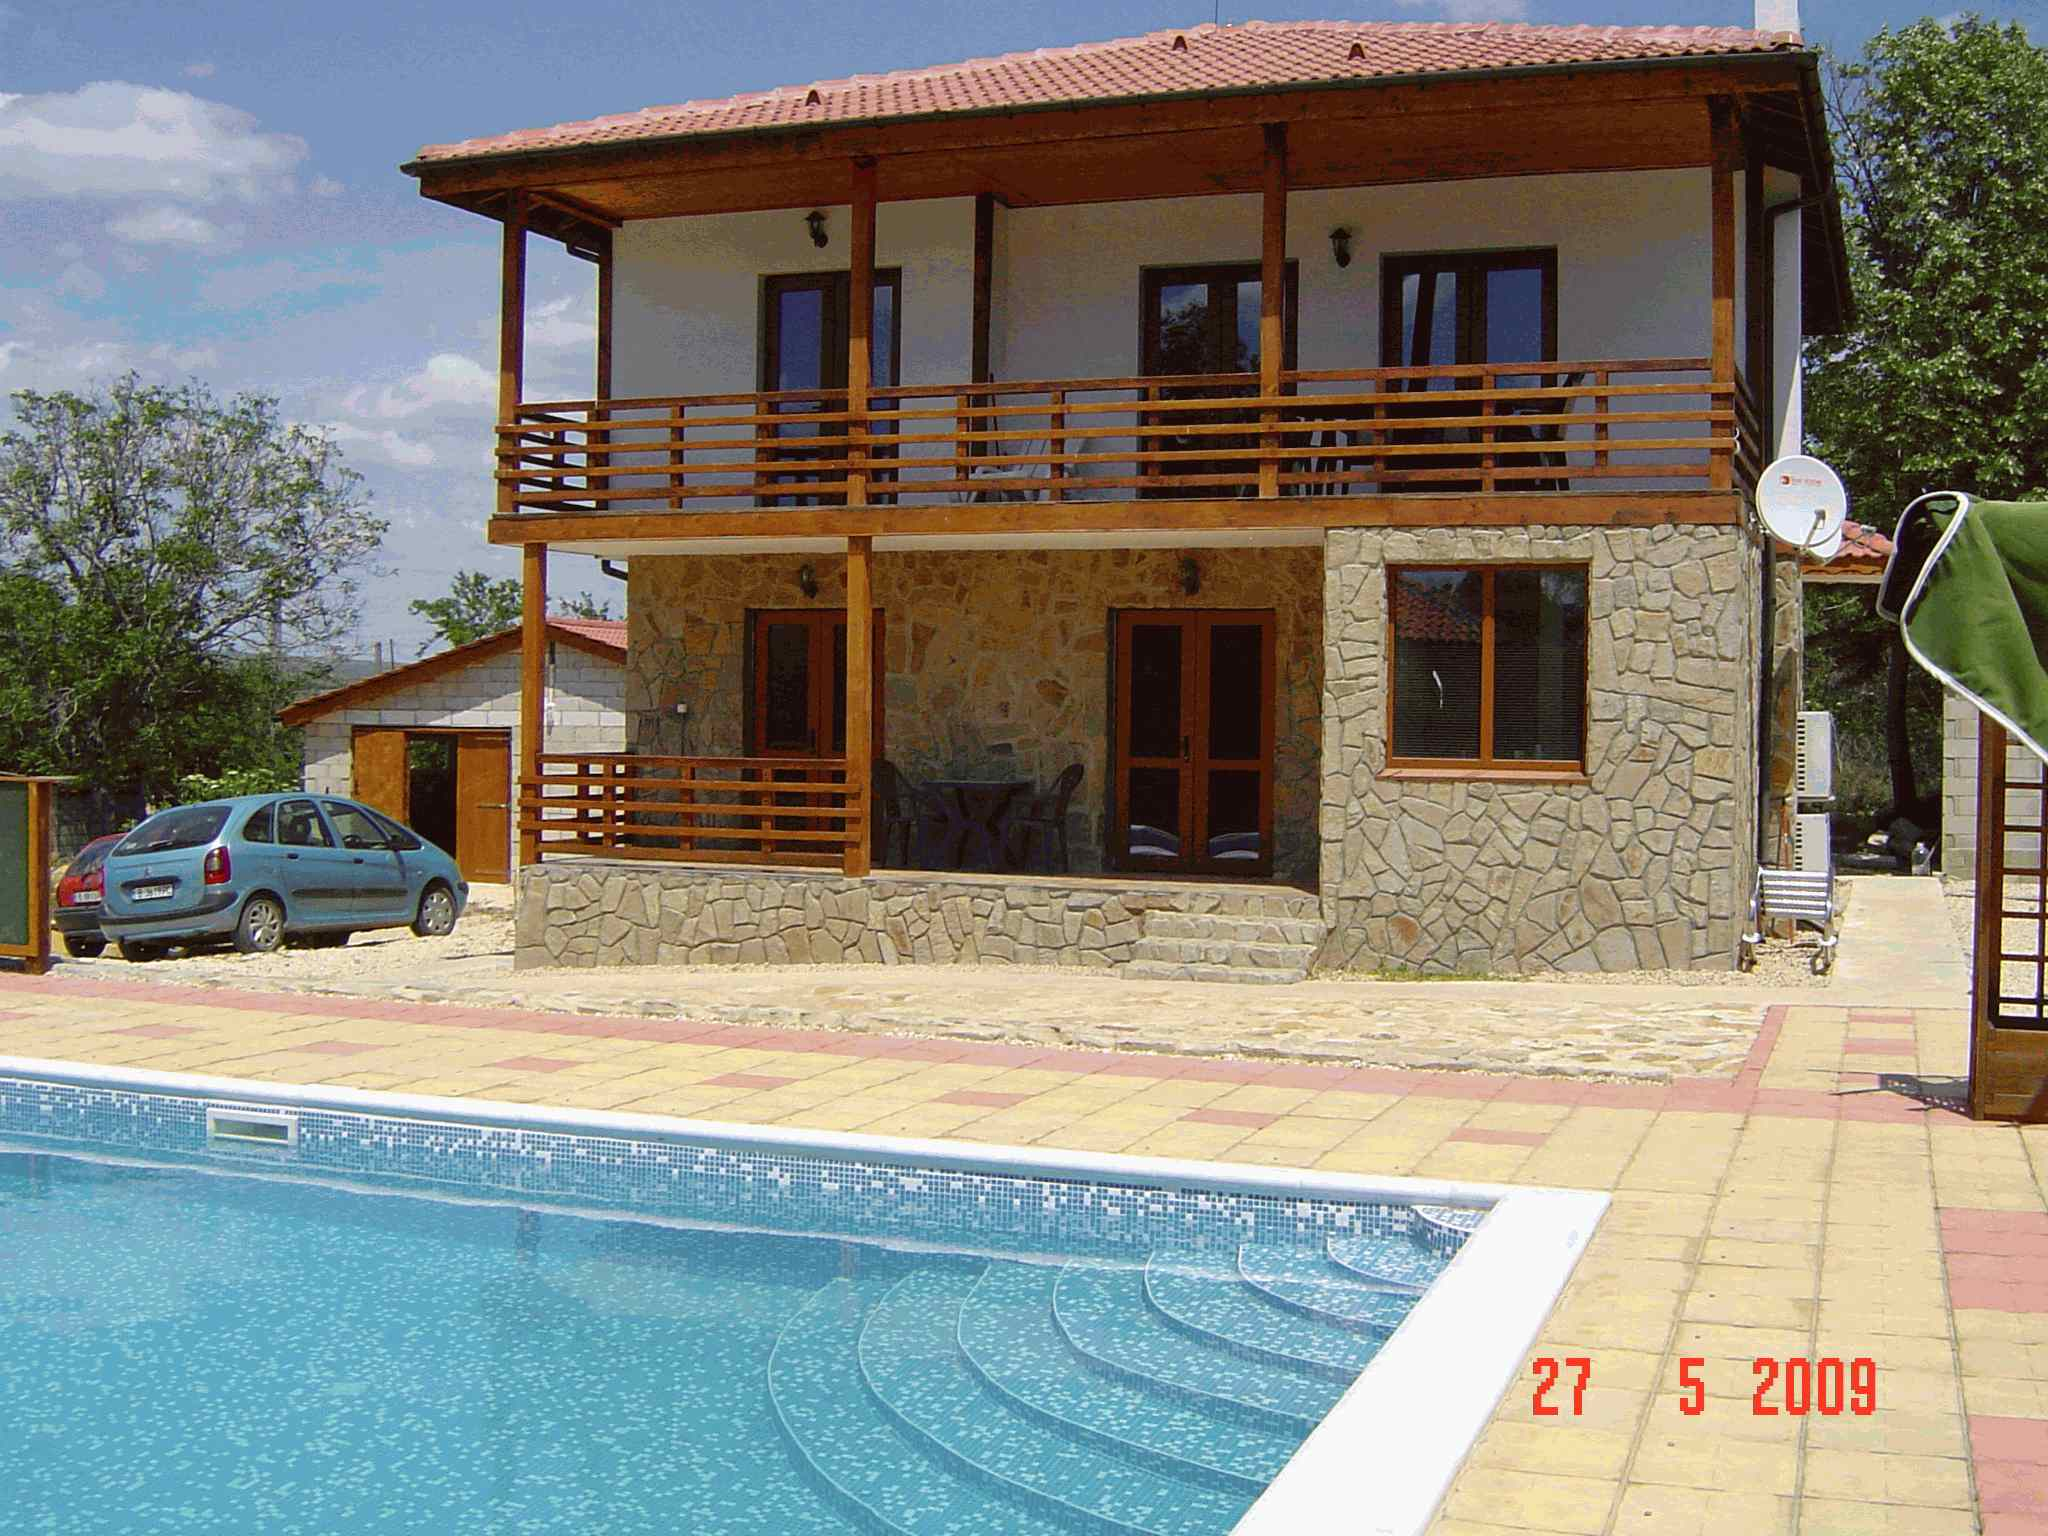 Our villa with pool.